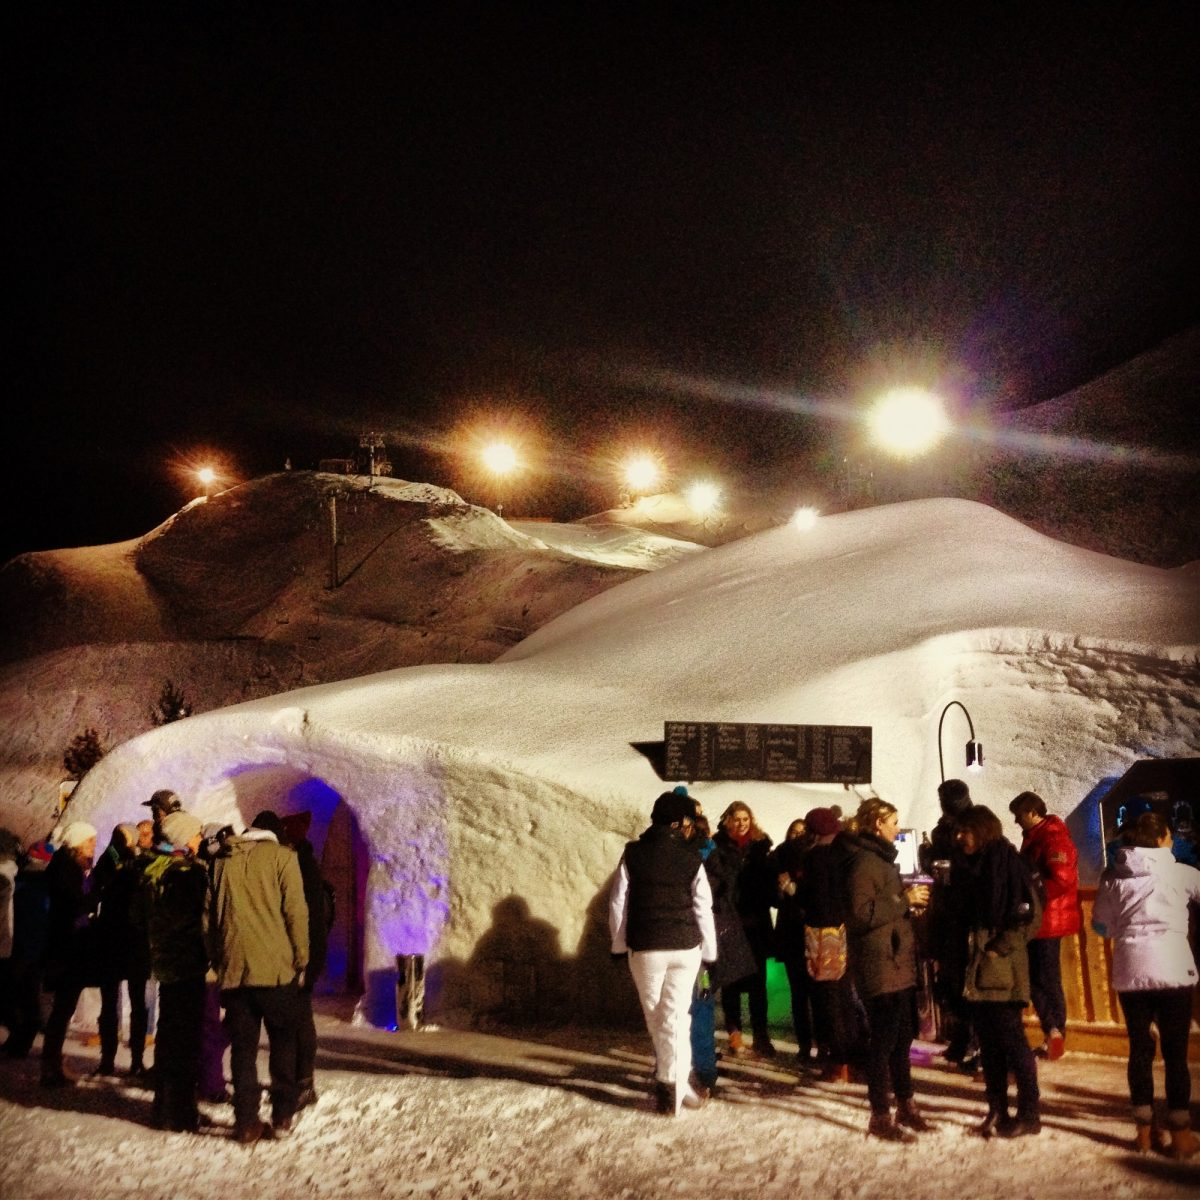 Party in an Igloo Alps Austria